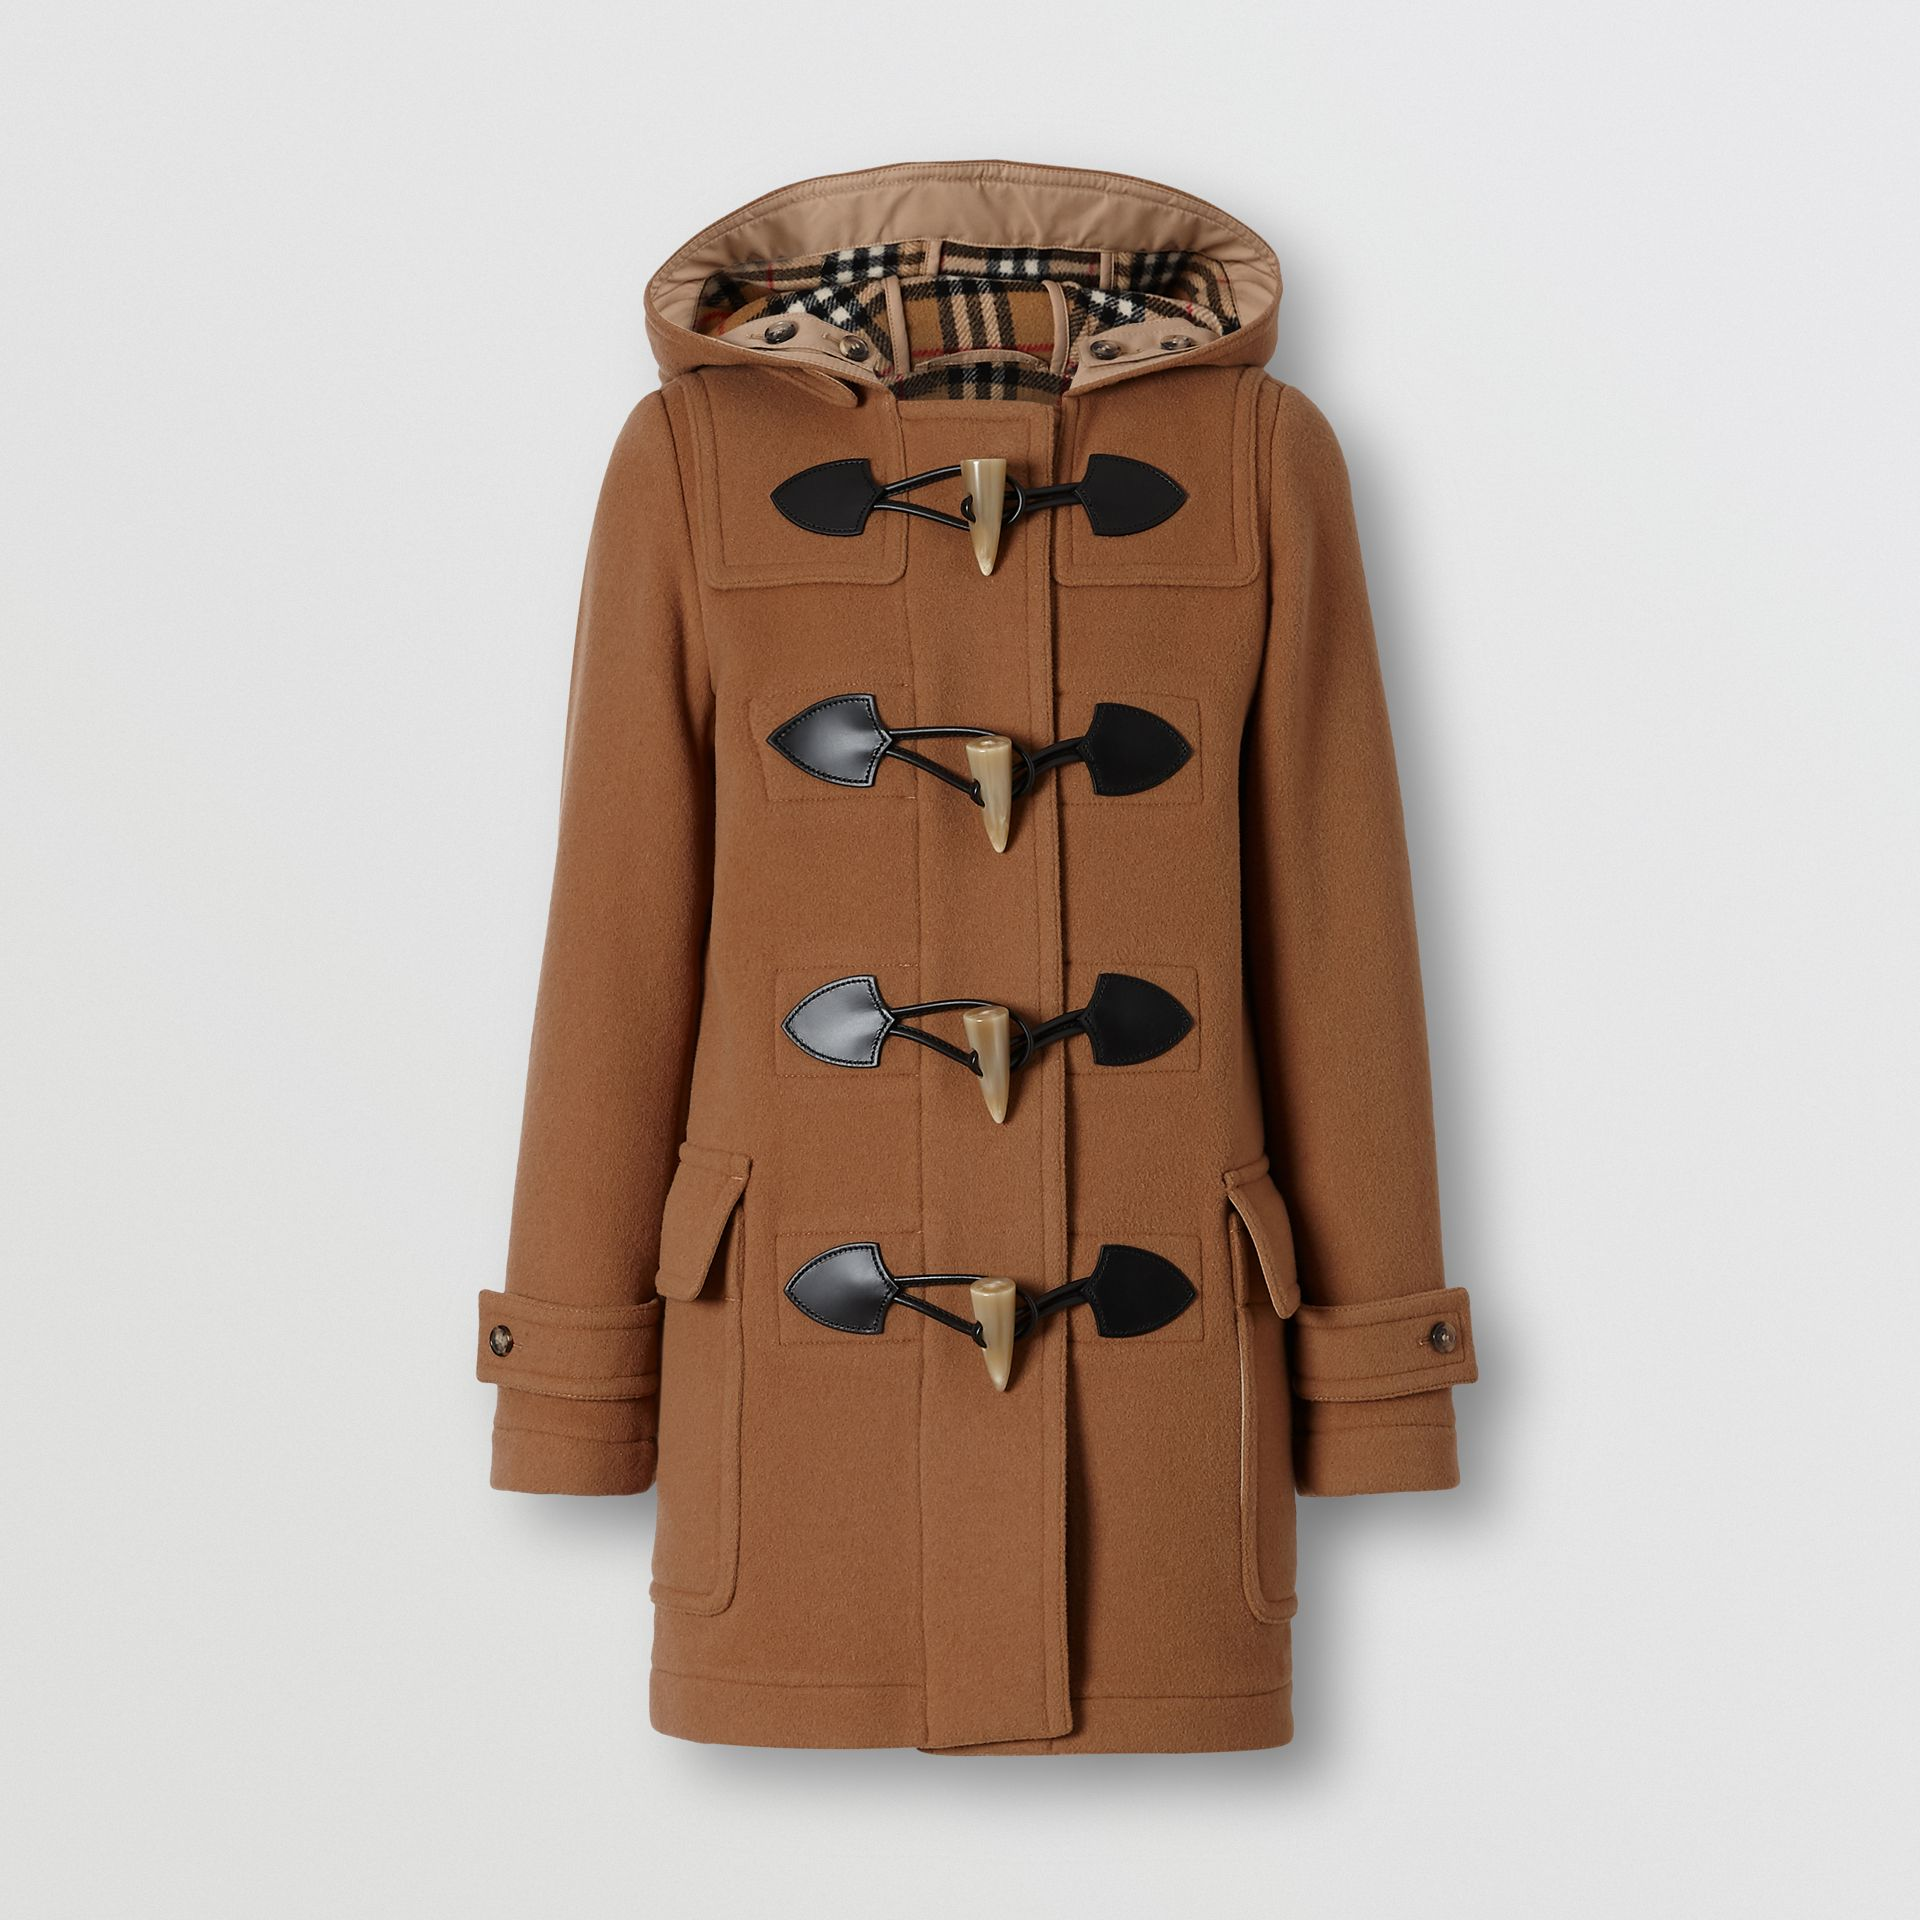 Wool Blend Duffle Coat in Camel - Women | Burberry - gallery image 5